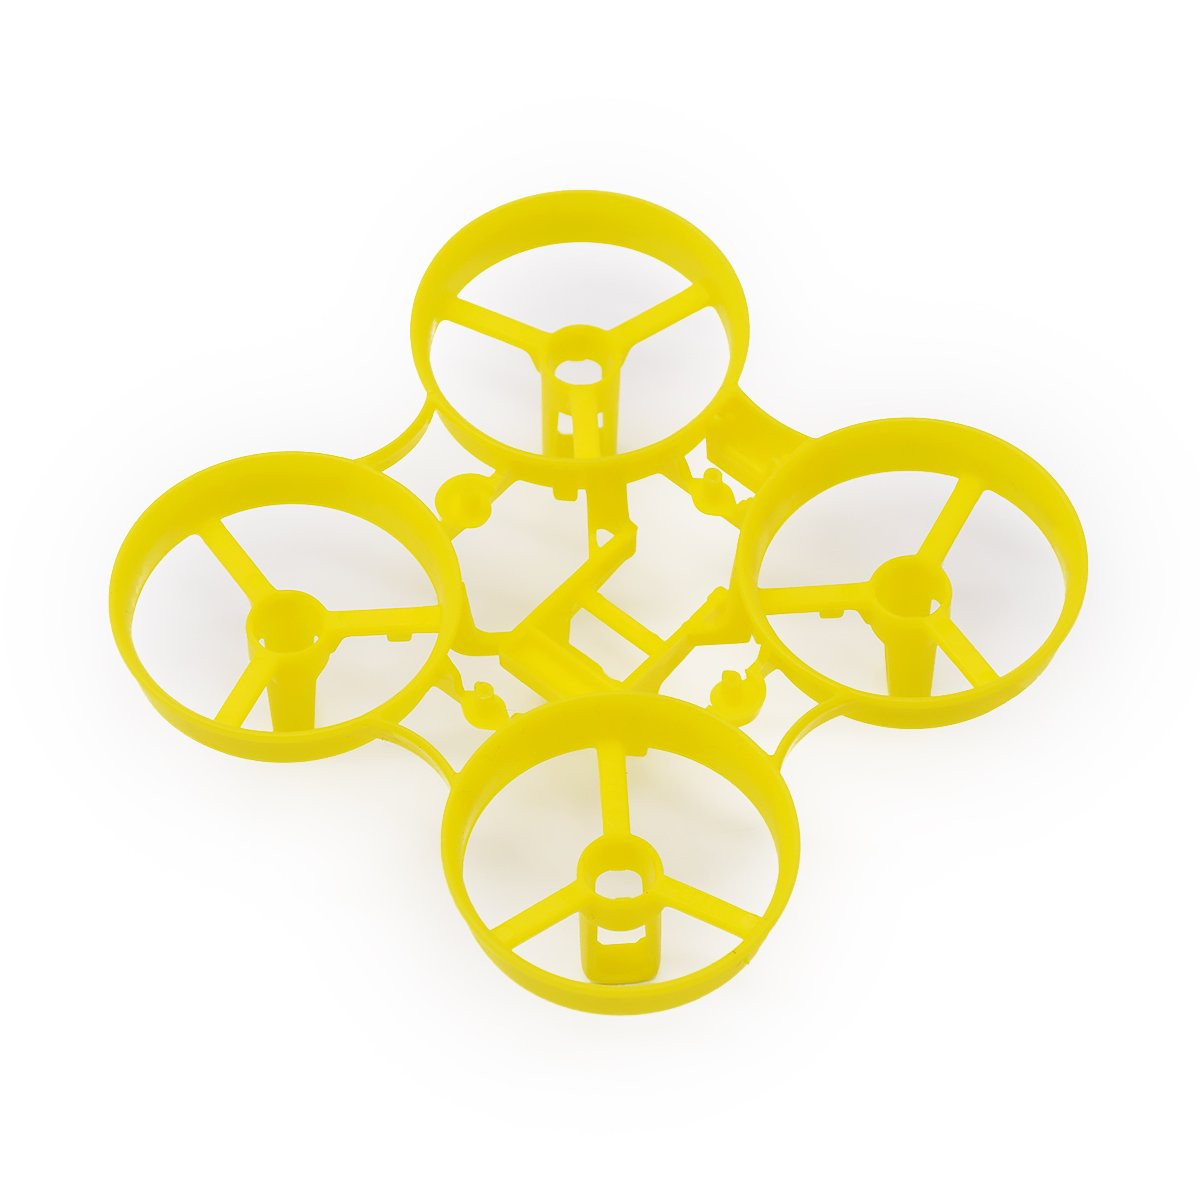 Beta FPV 7x16mm Motor用65mm Tiny Whoop V3 Frame(Yellow)